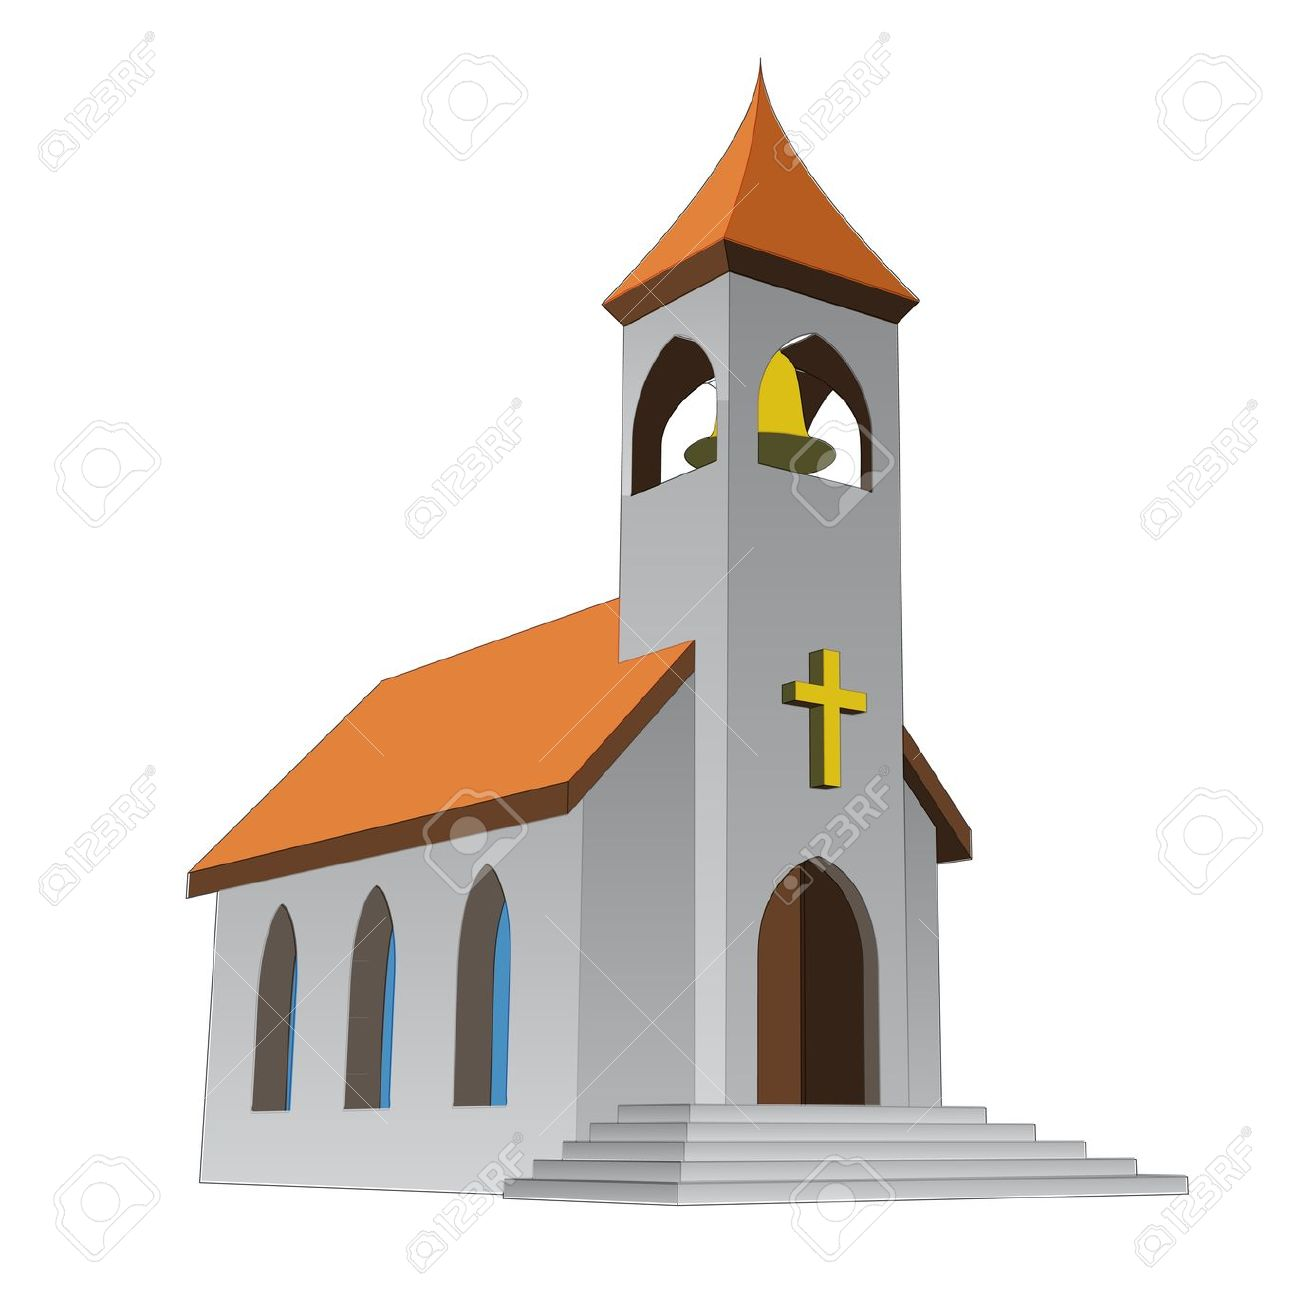 Rural Isolated Church For Catholics With Bell Vector Illustration.